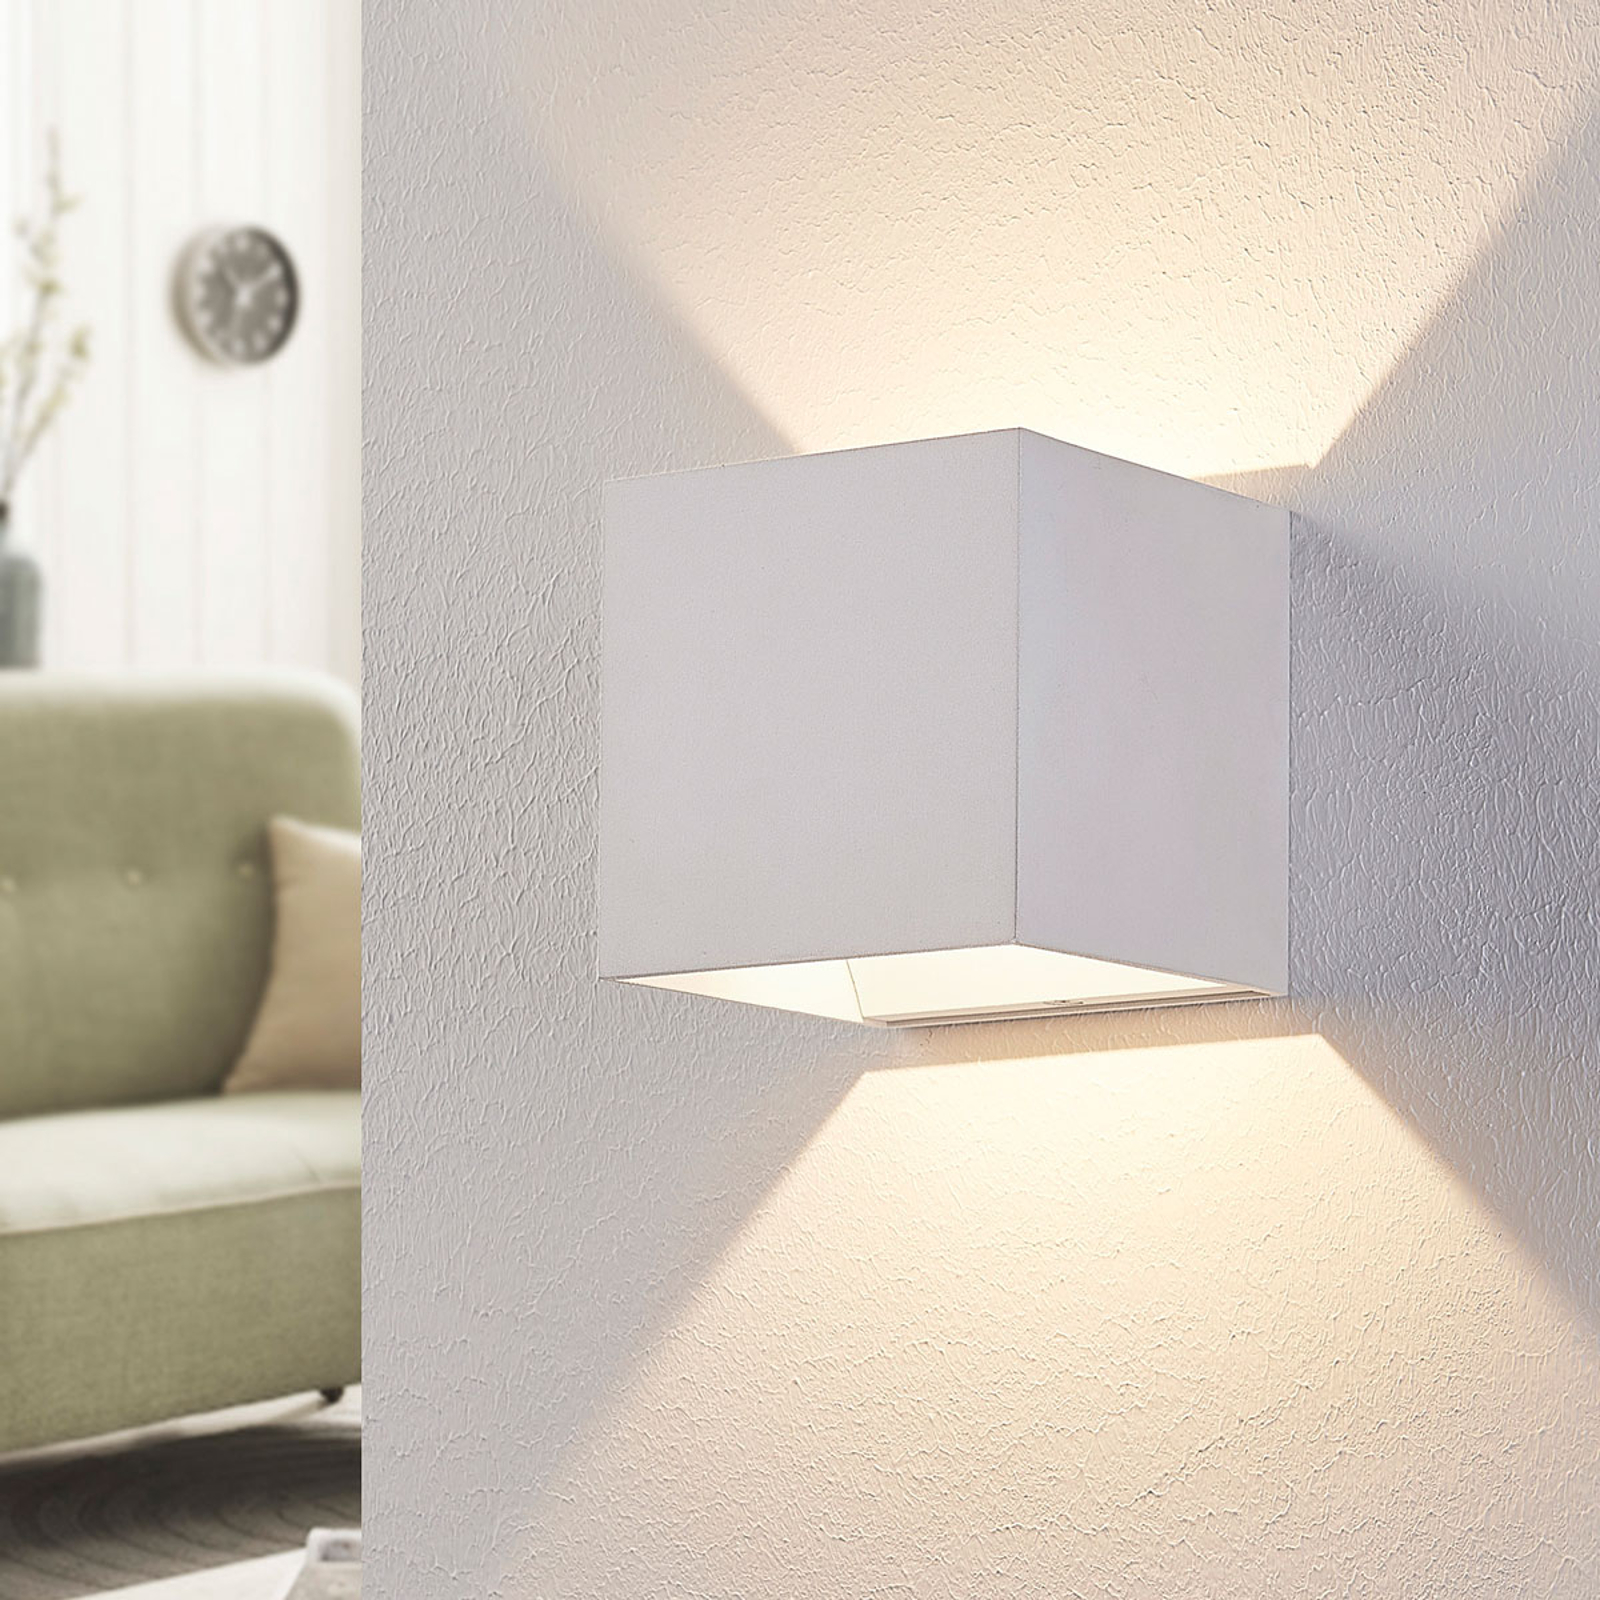 Applique LED Esma blanche, de forme cubique